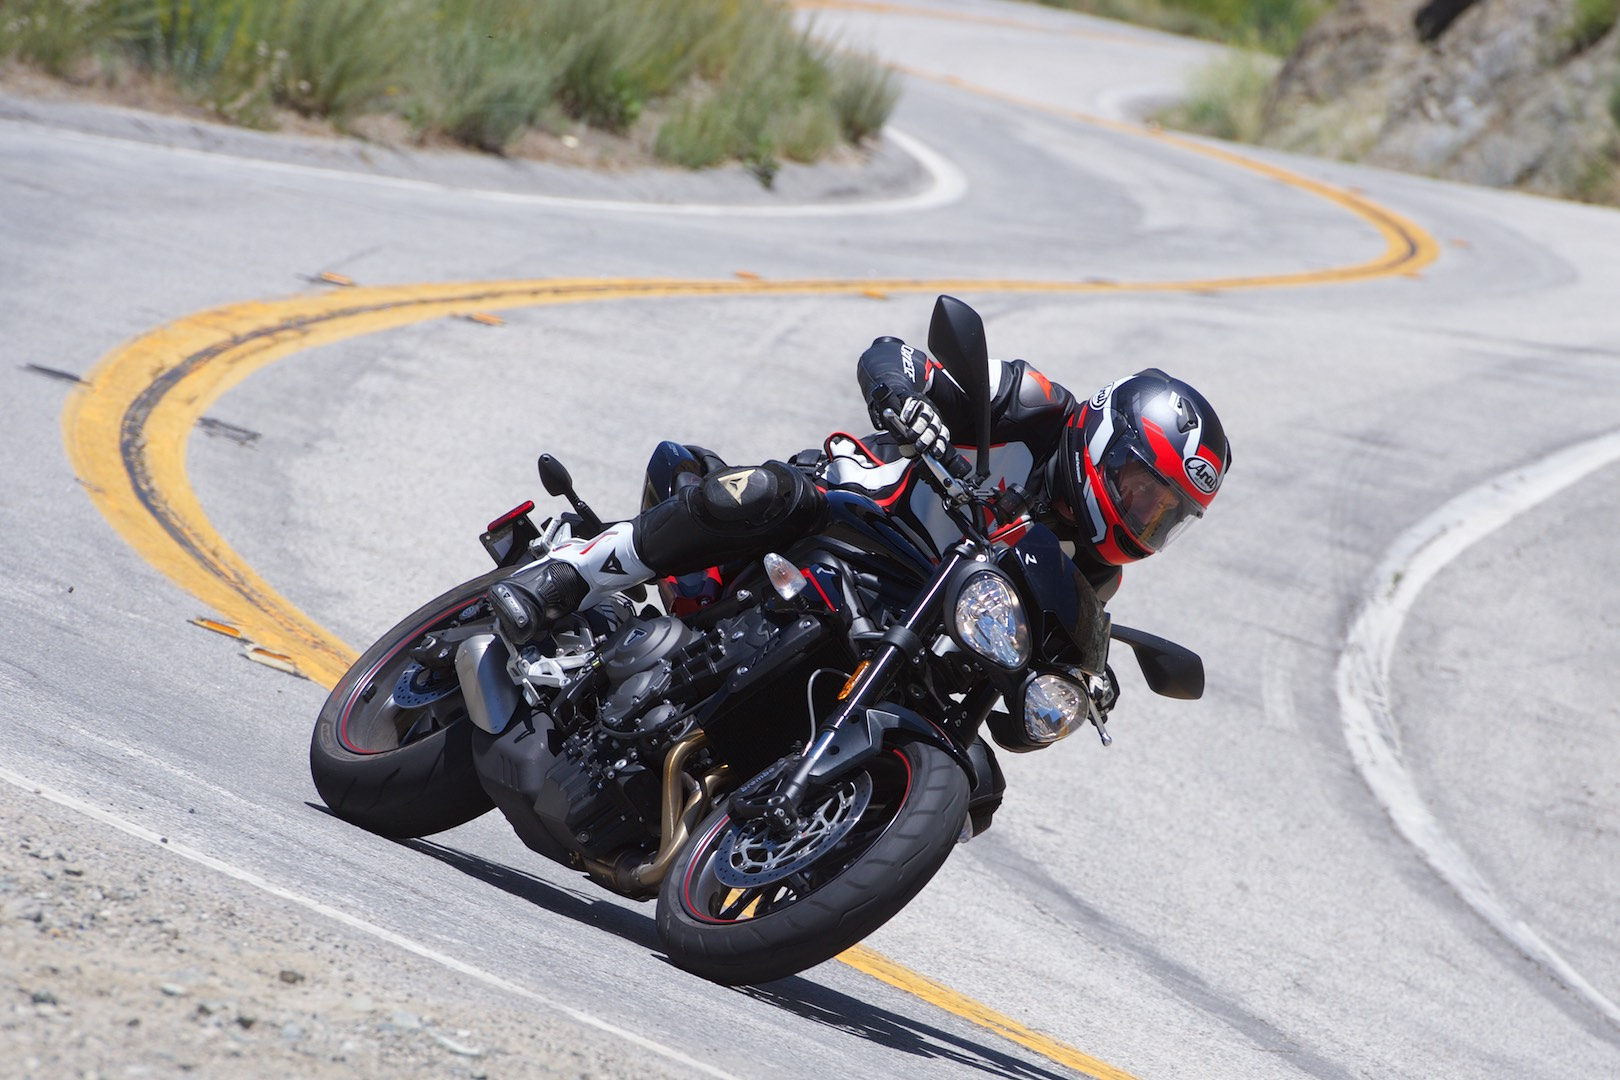 2019 Triumph Street Triple R Review